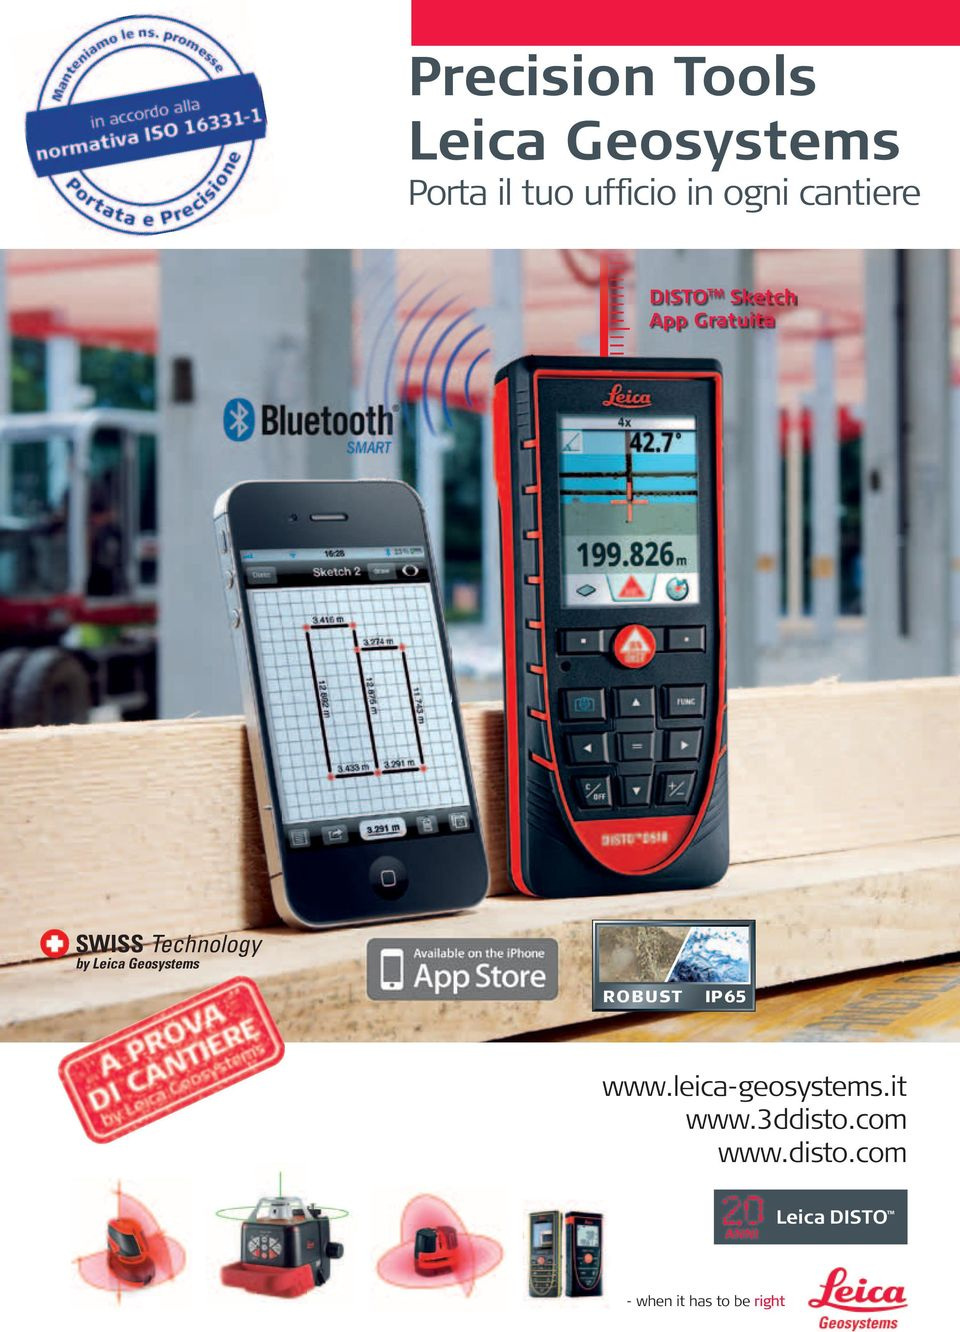 Leica Geosystems ROBUST IP65 www.leica-geosystems.it www.